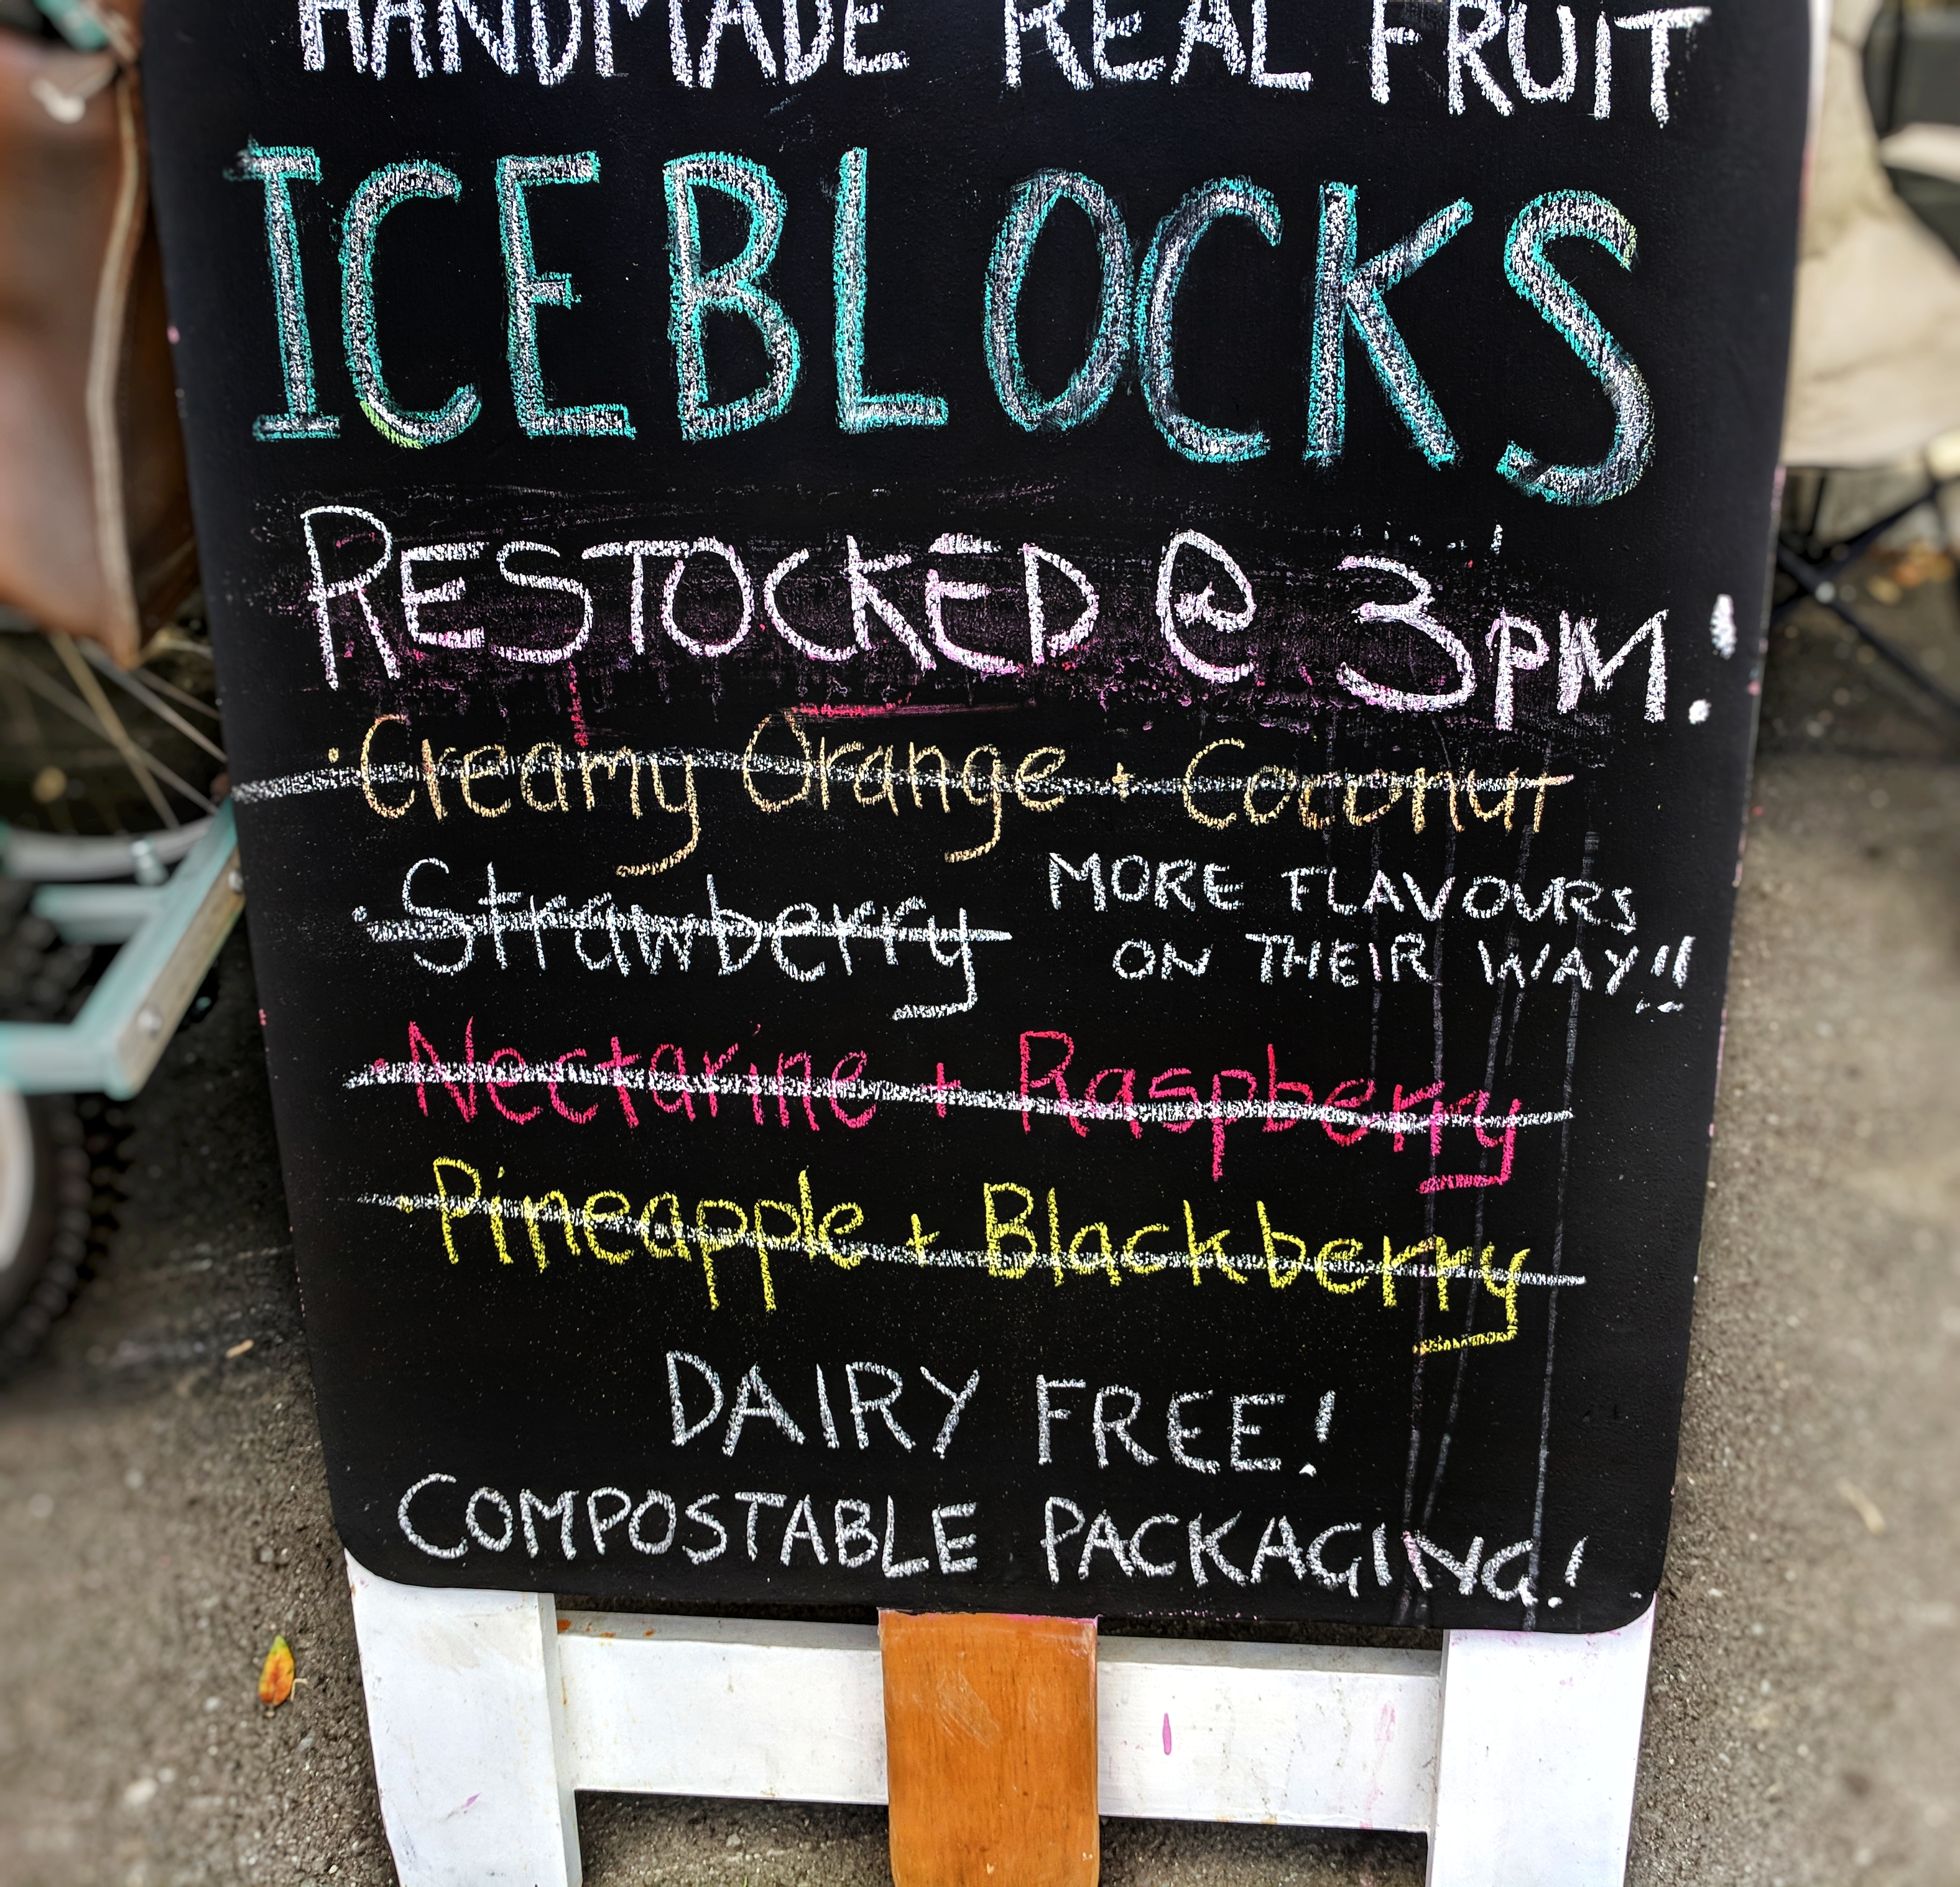 'Sold out' iceblocks sign at the cricket